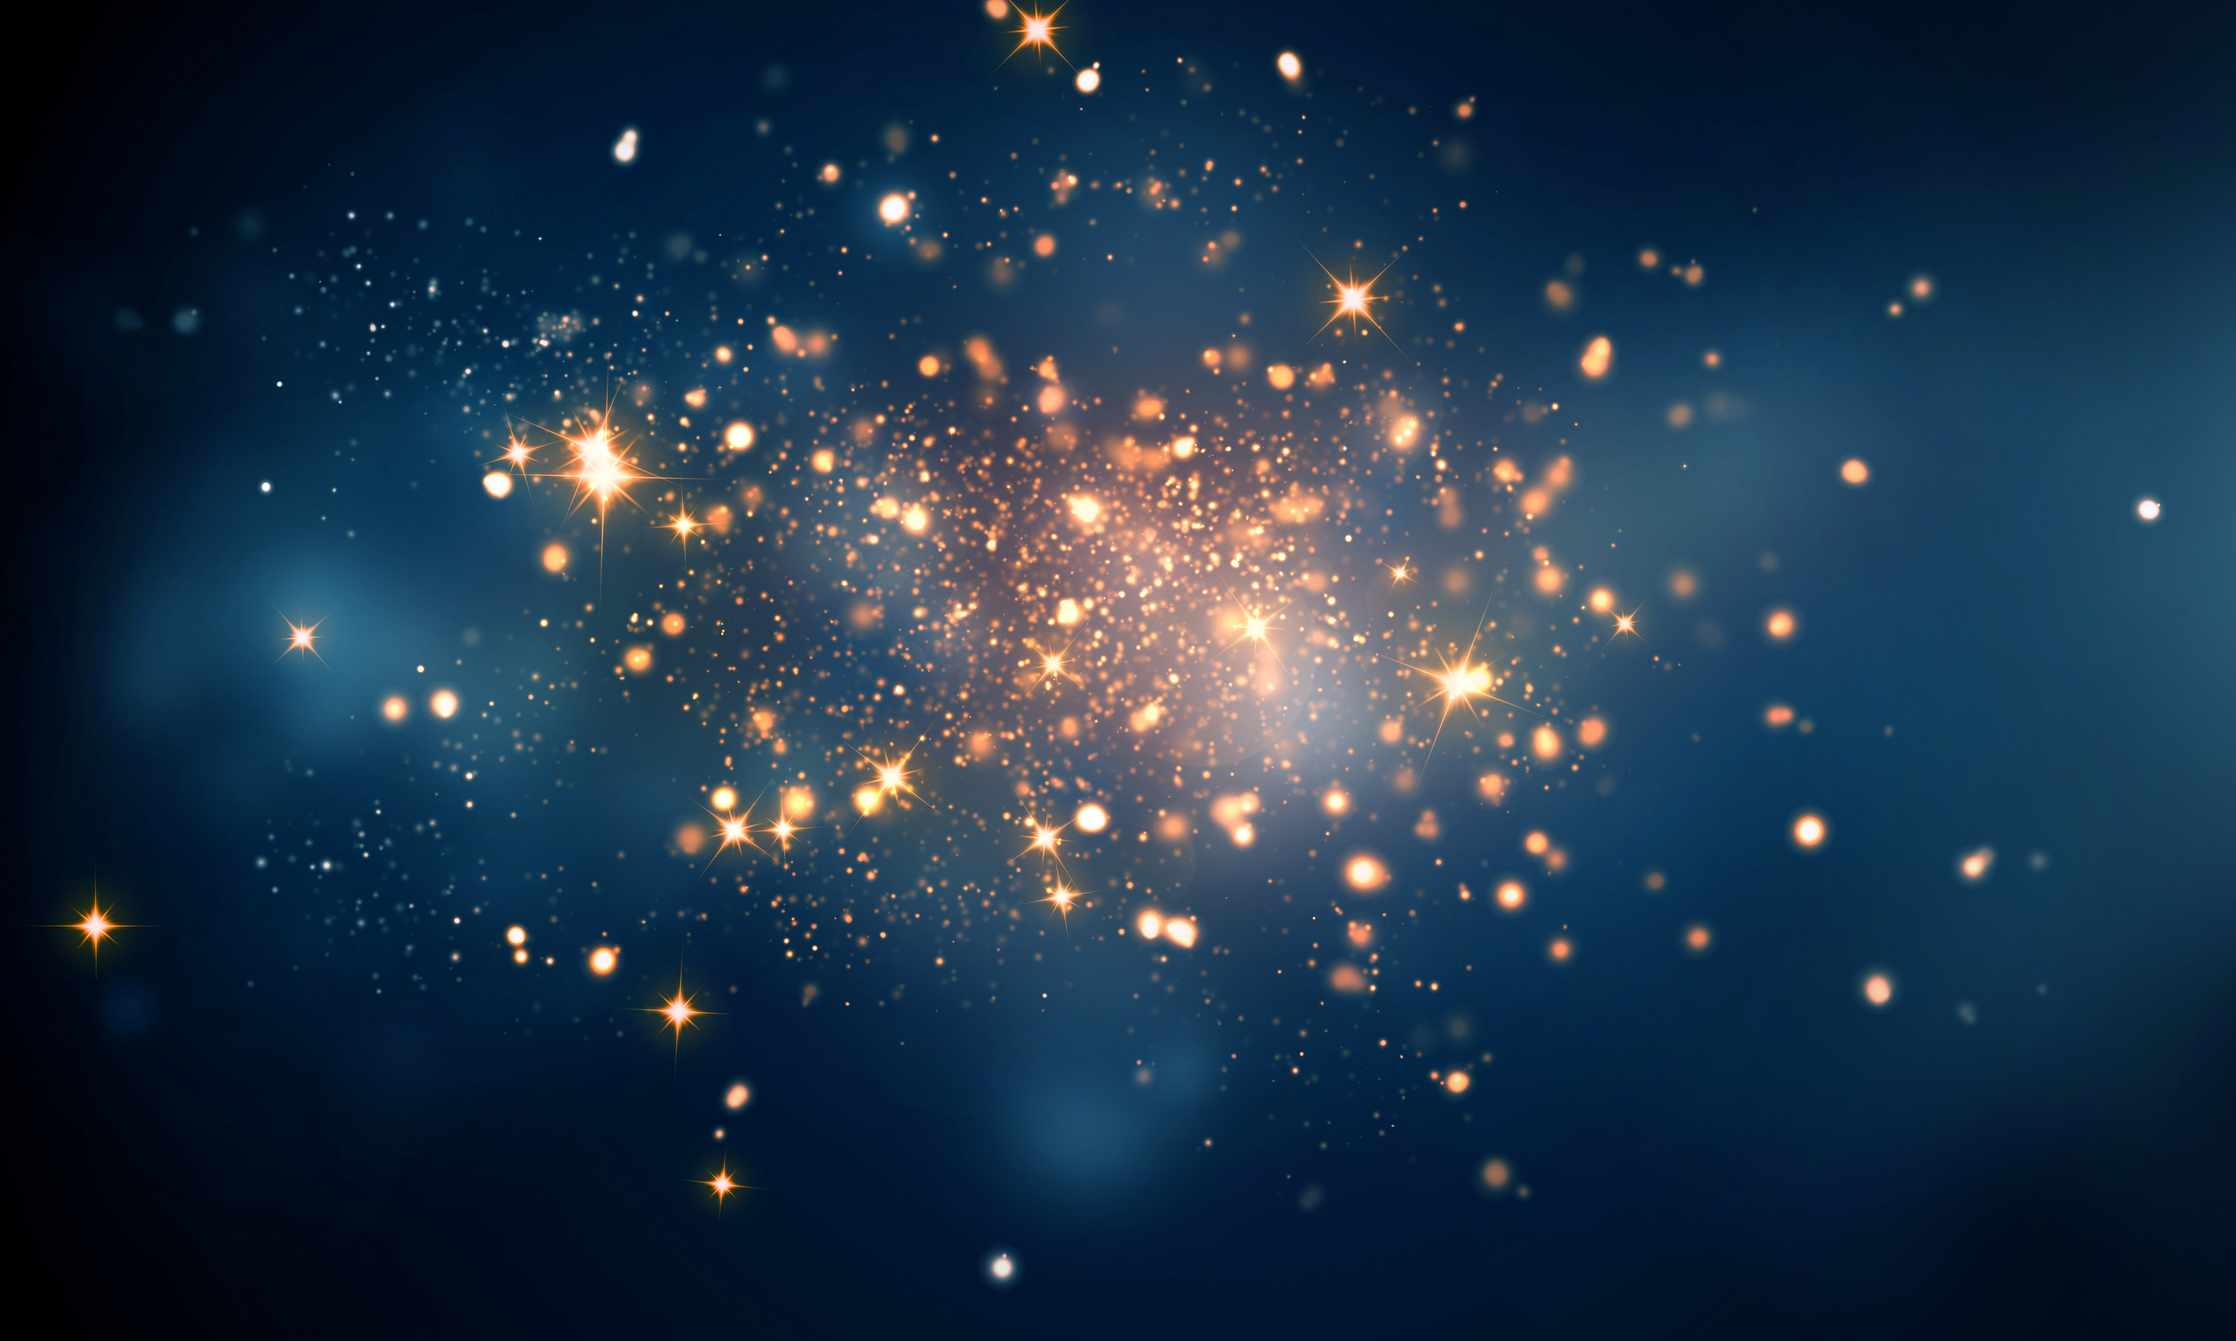 Does light escape the Universe when it is expanding or contracting? © Getty Images